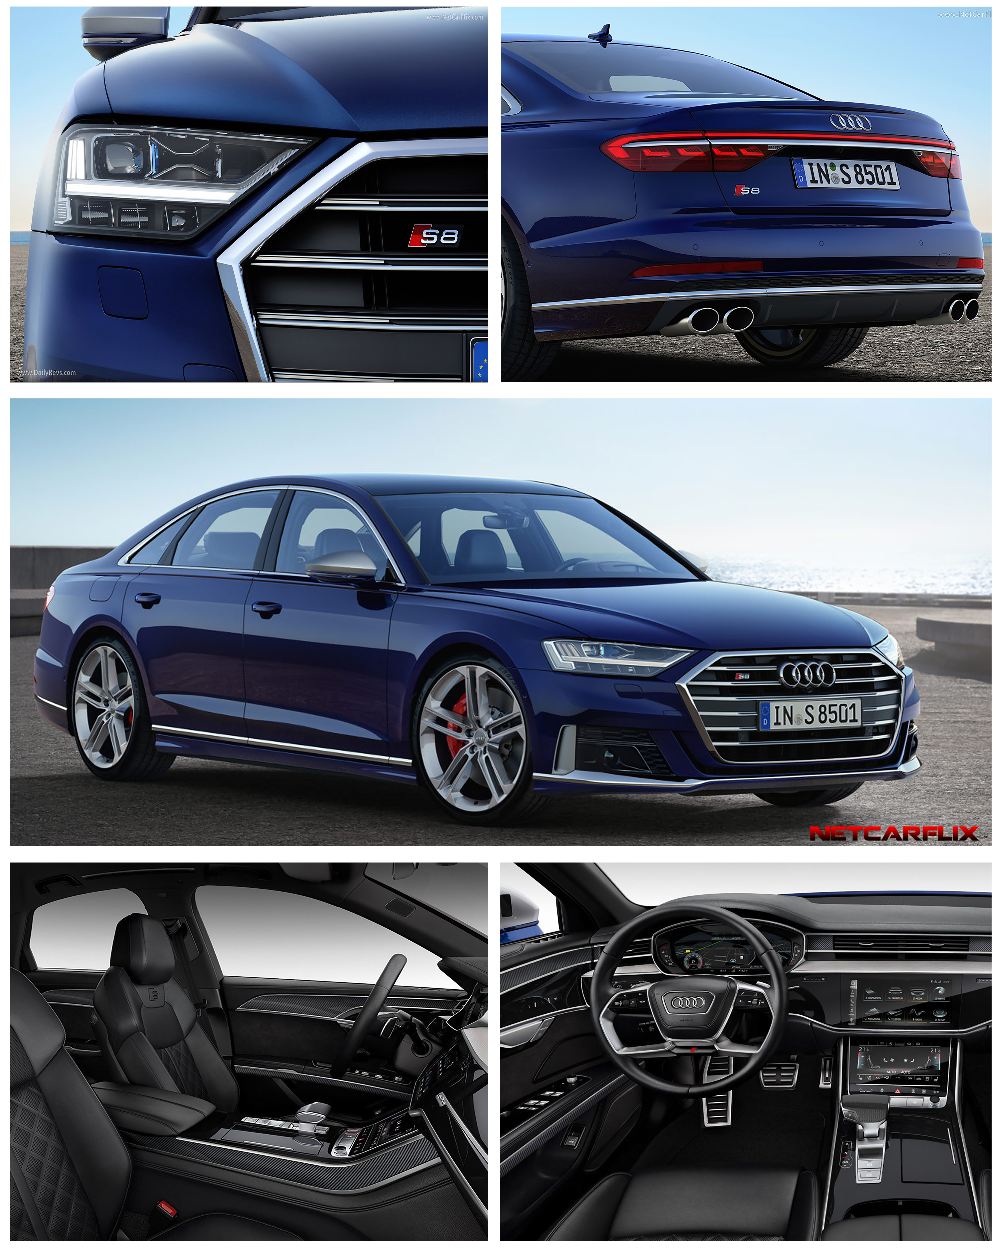 2020 Audi A8 Audi A8 Car Luxury Cars